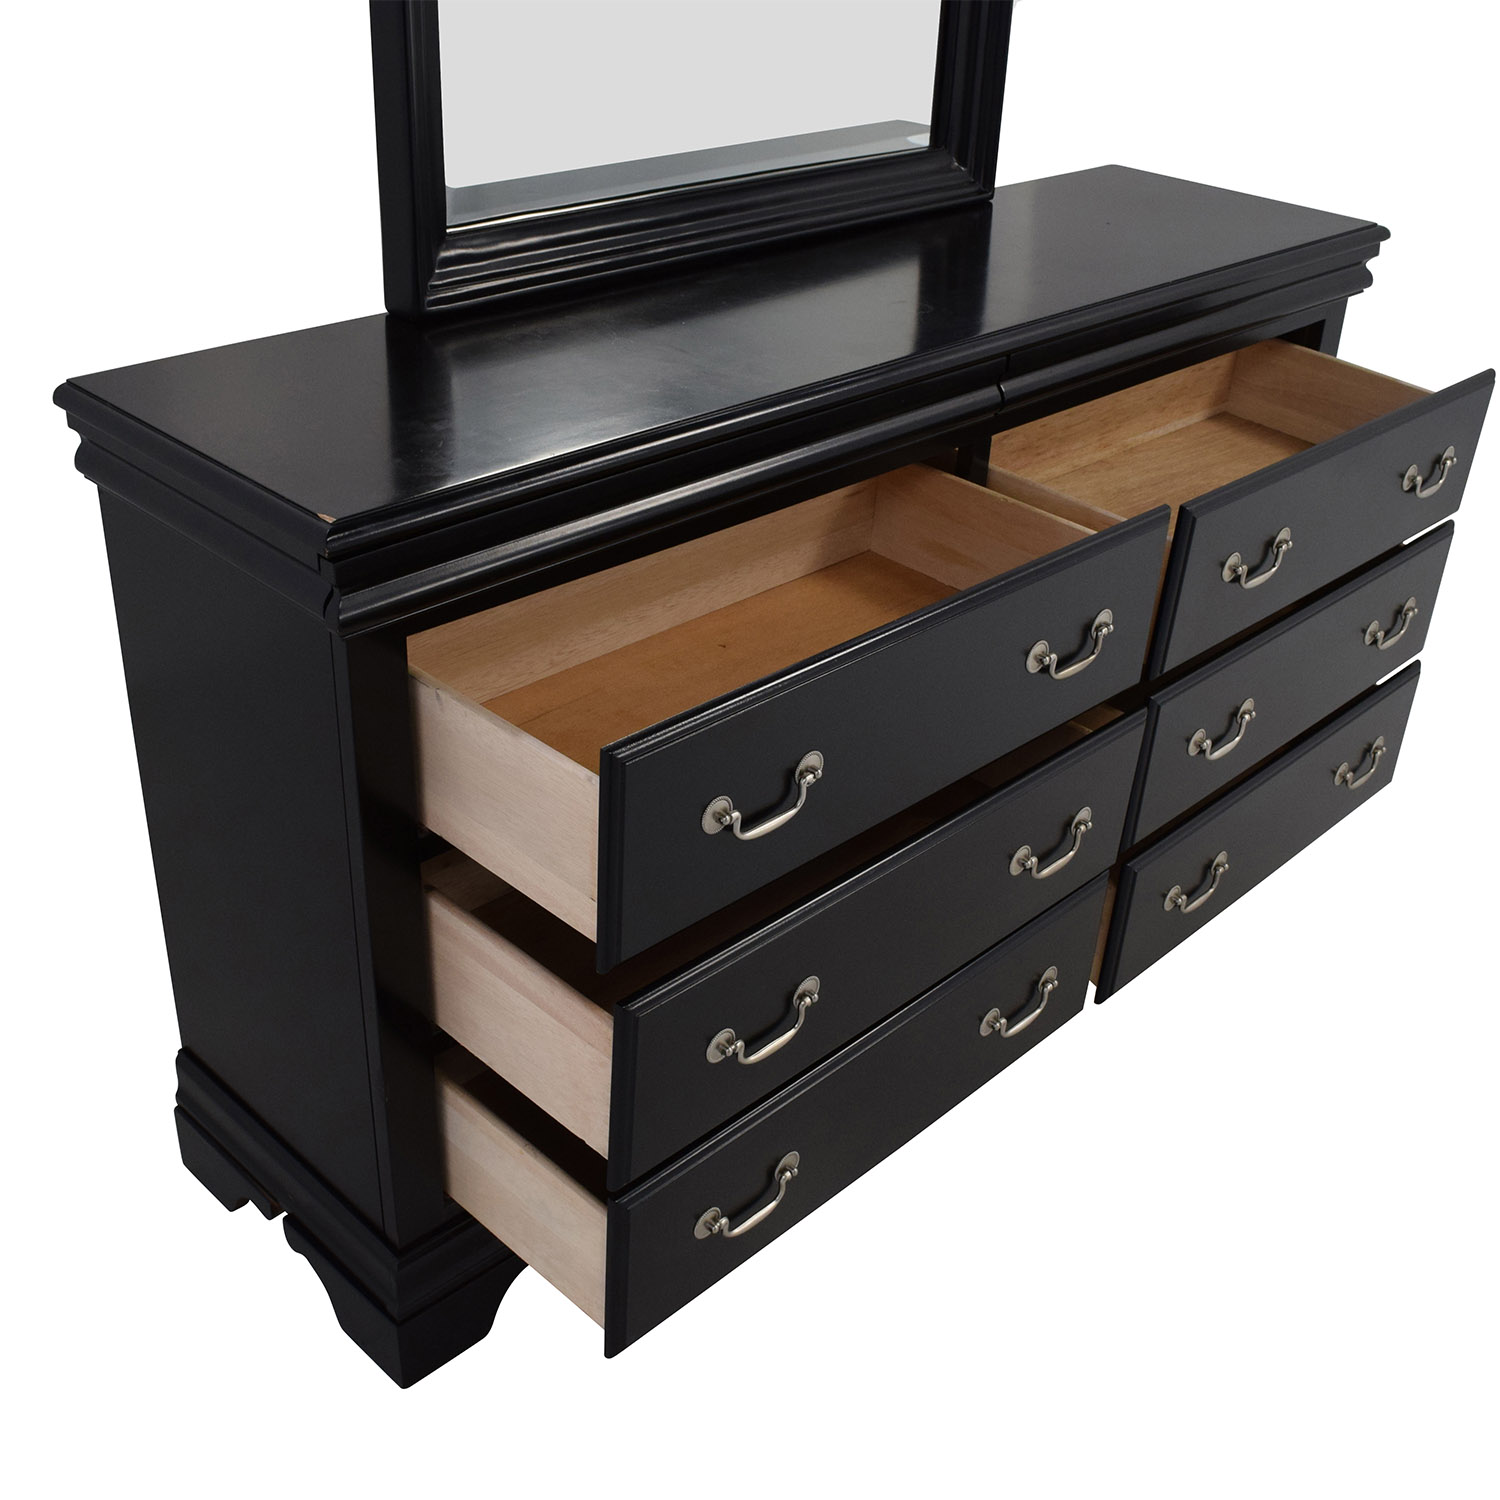 Bobs Furniture Mirrored Dresser Bestdressers 2017